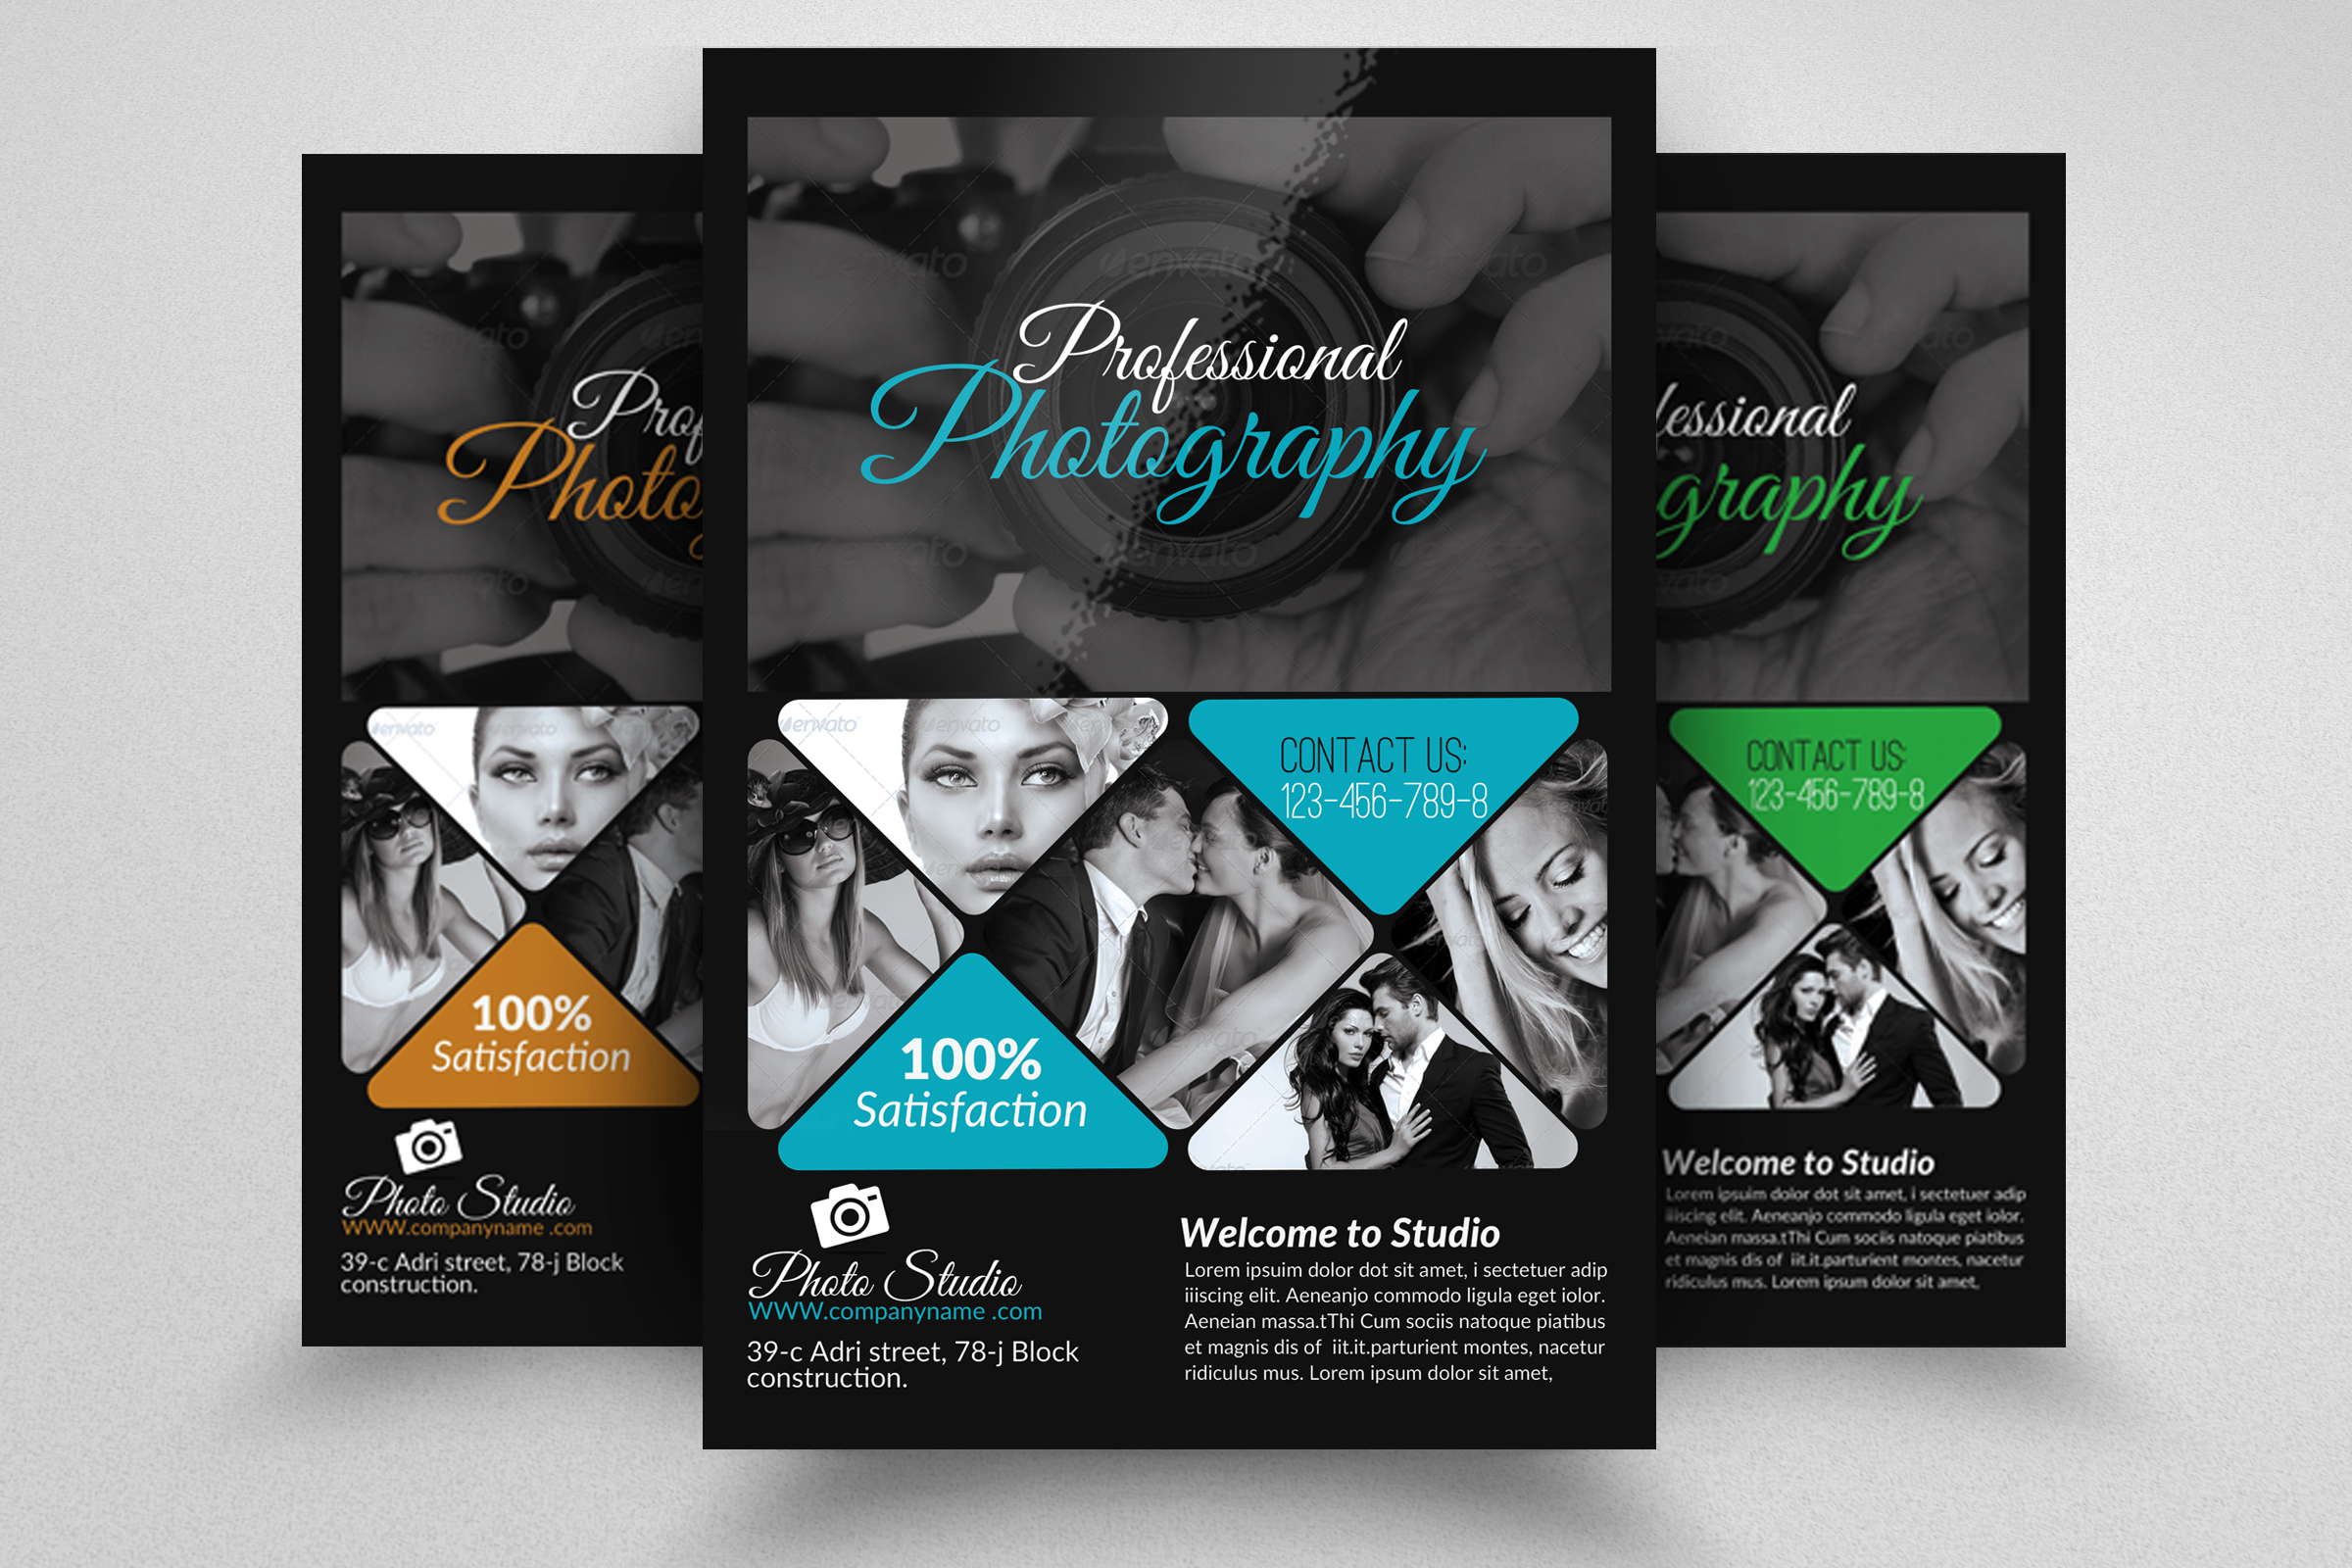 Photography Studio Poster Template | PosterMyWall |Photography Business Flyer Ideas